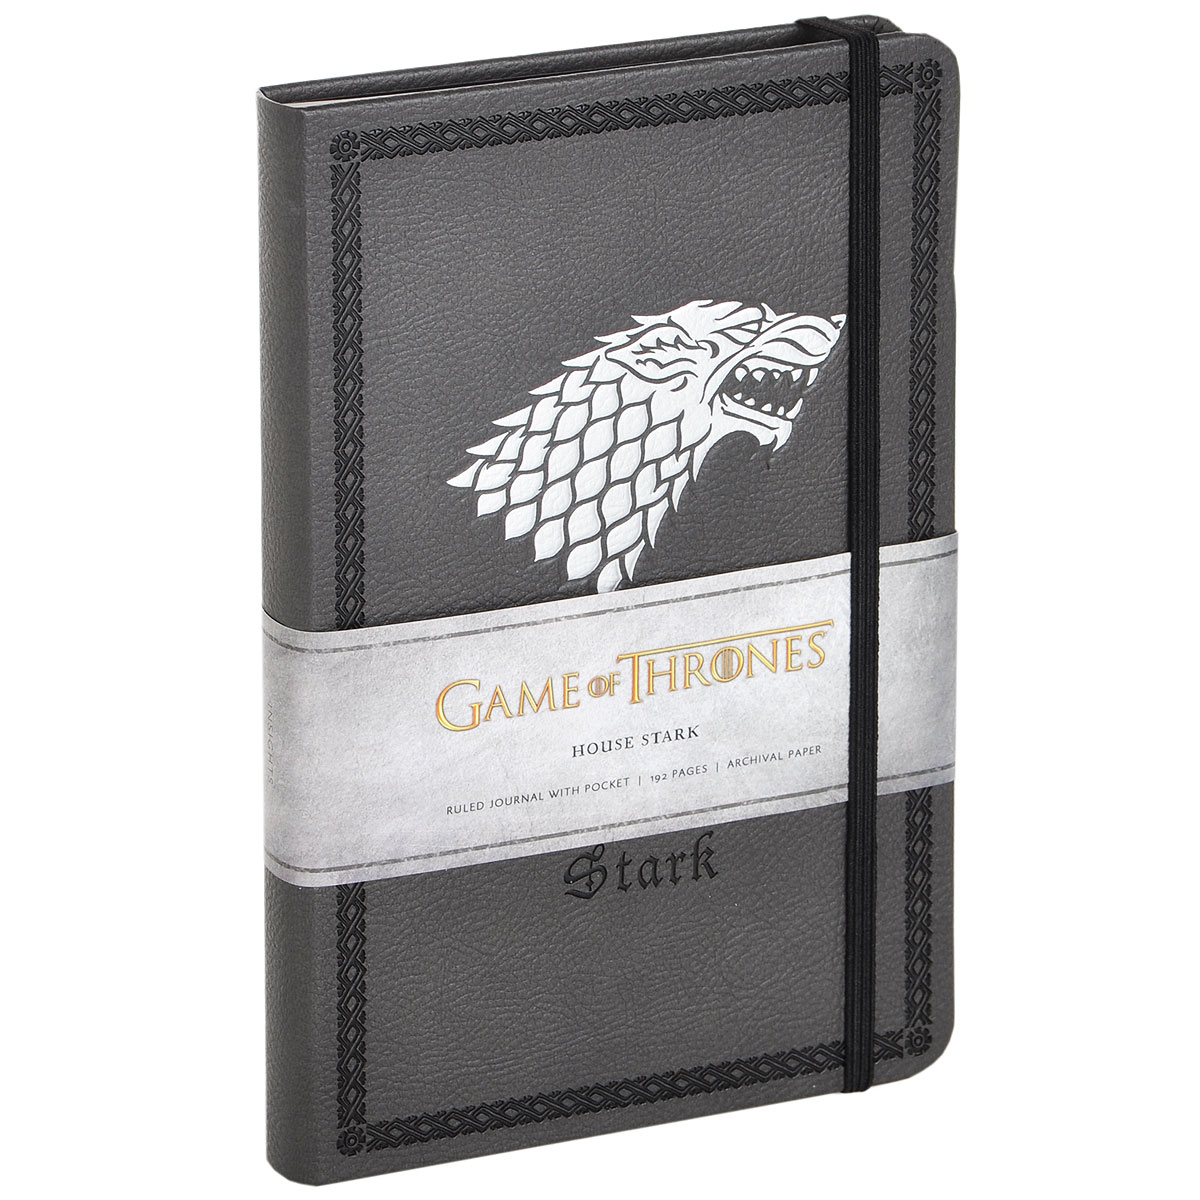 Game of Thrones: House Stark: Ruled Journal With Pocket a game for all the family